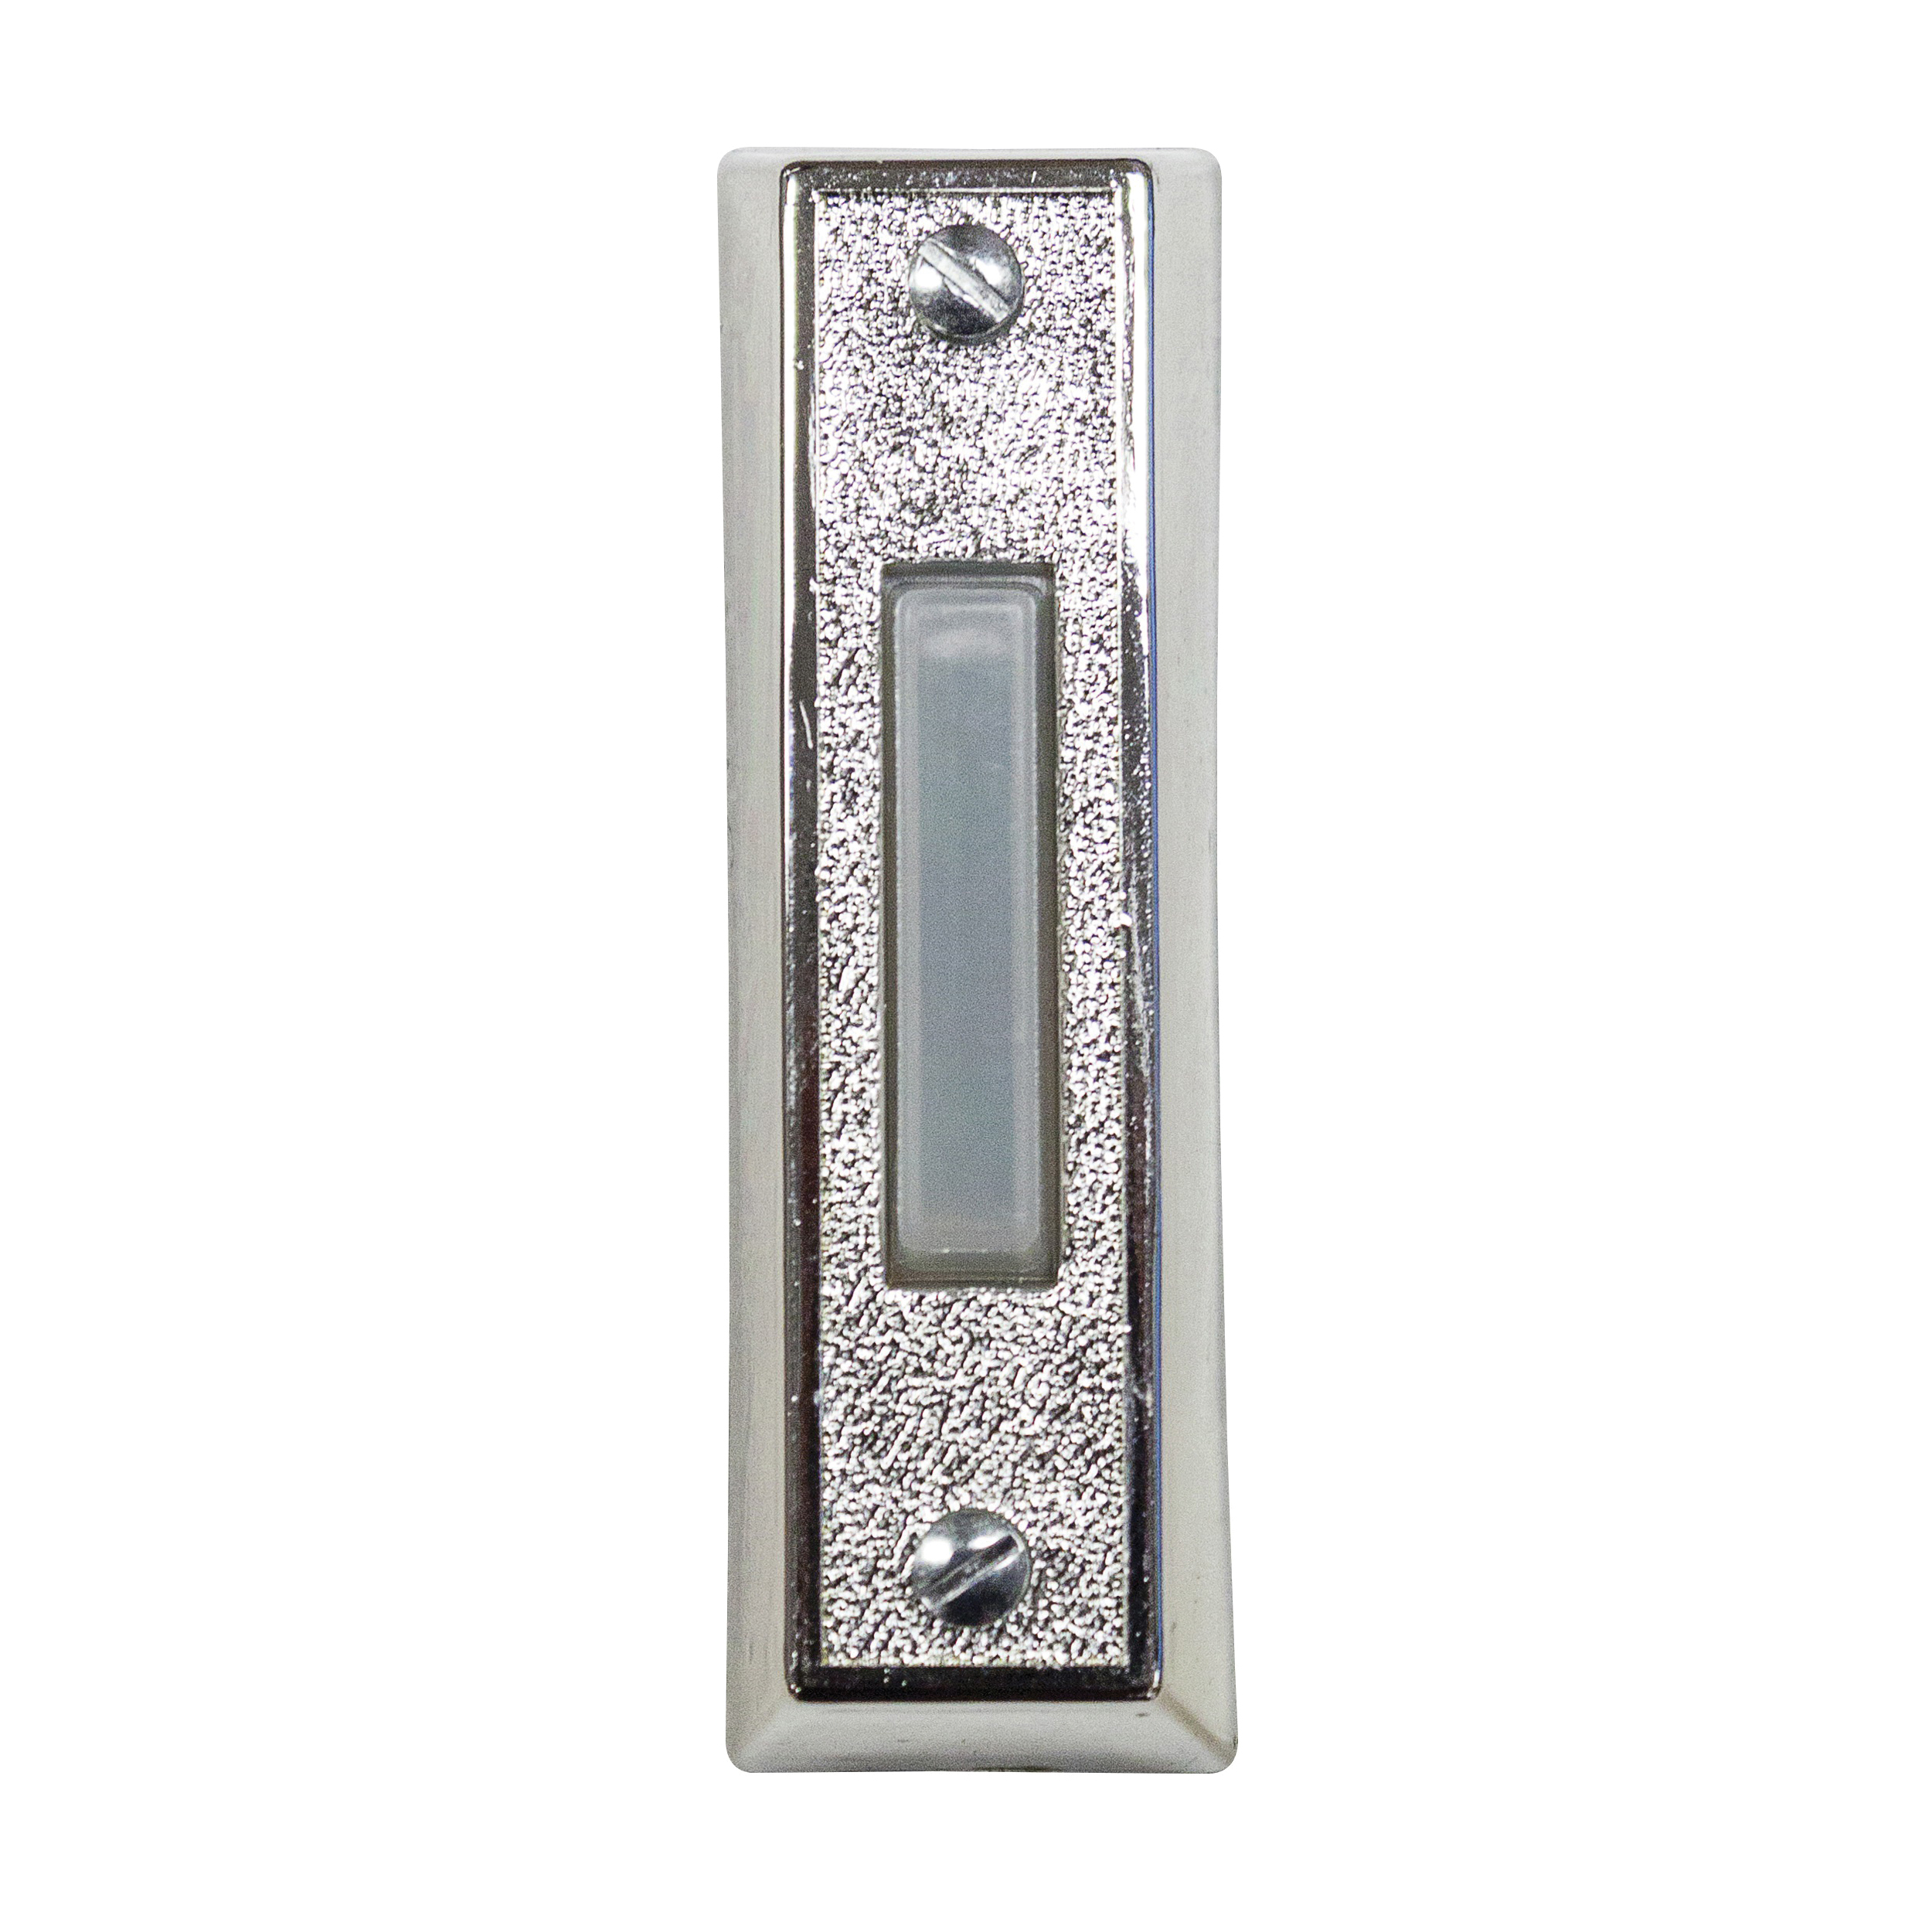 Picture of Heath Zenith SL-358-00 Pushbutton, Wired, Plastic, Silver, Lighted